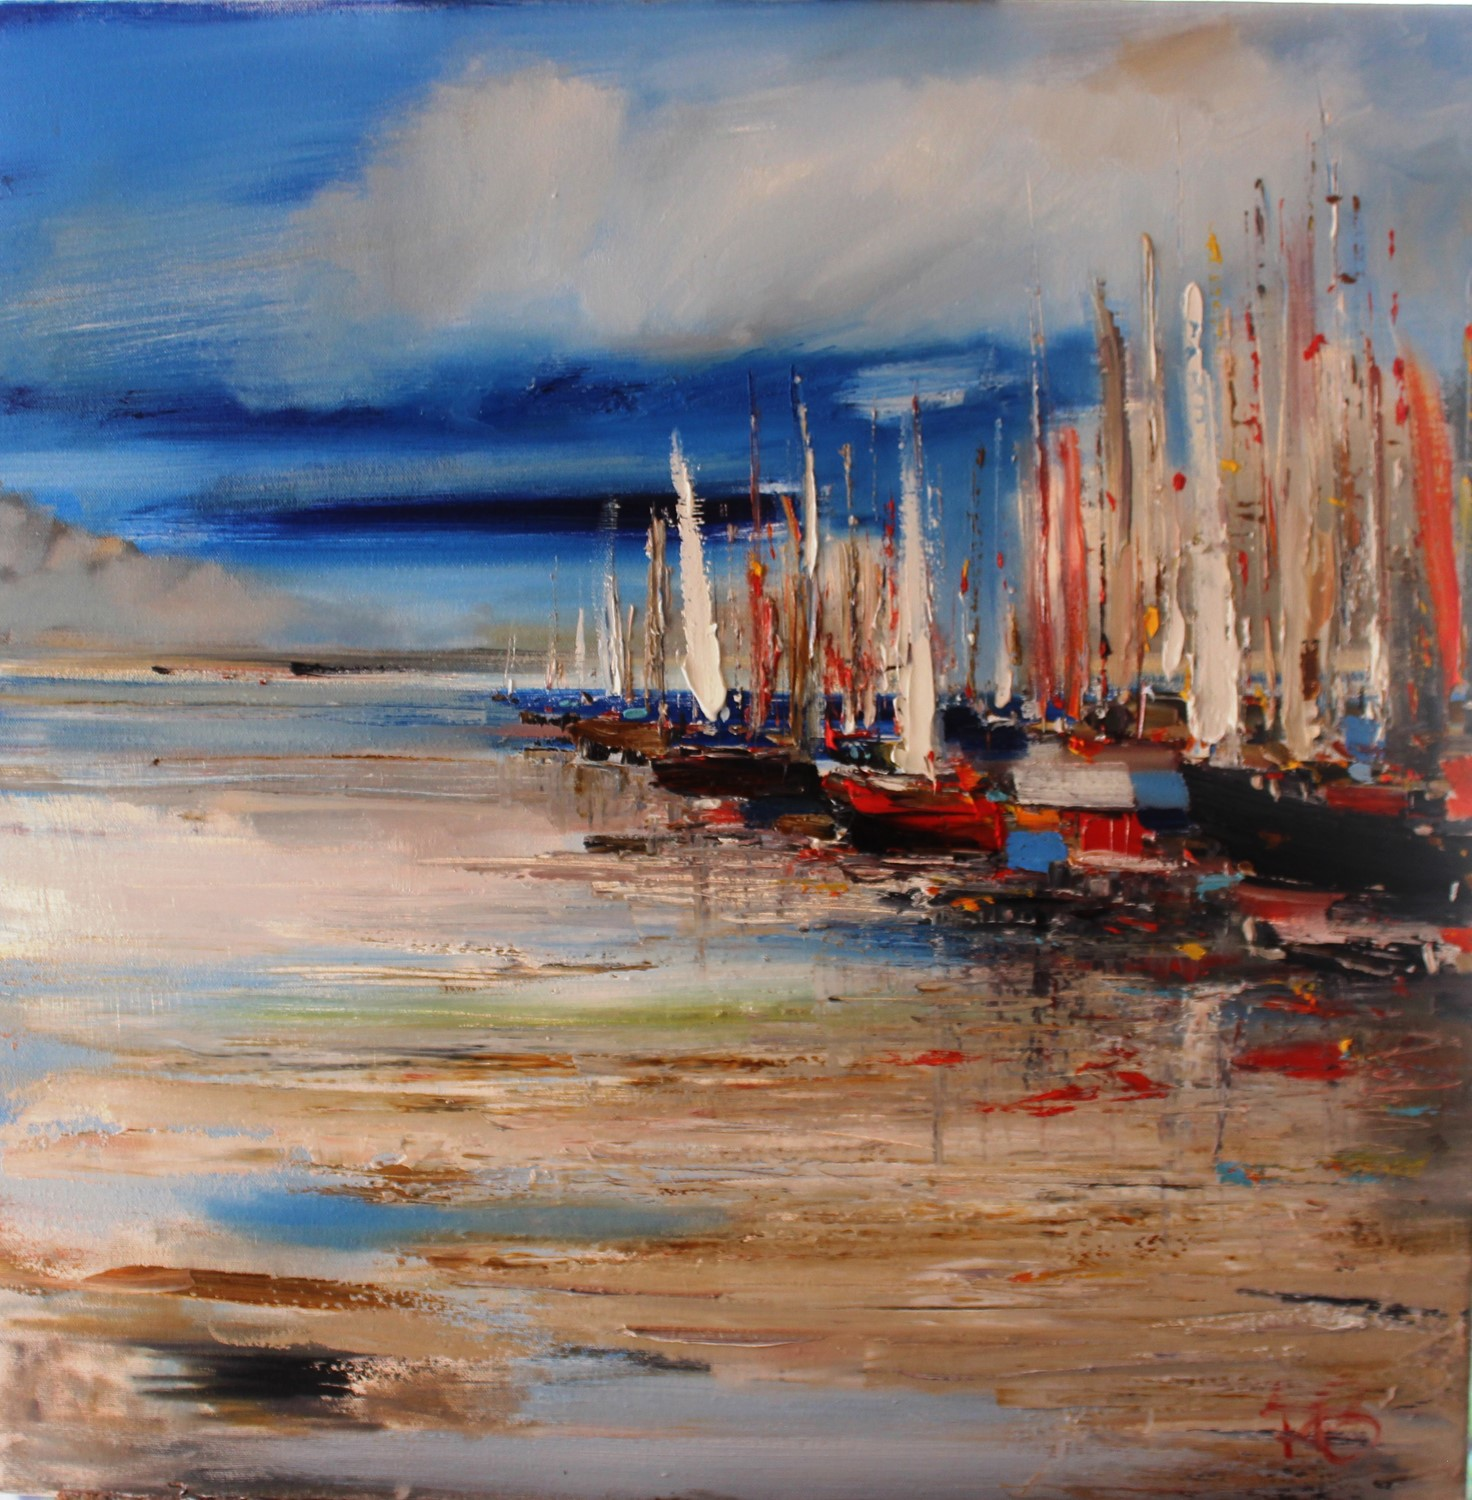 'Boats Gathered' by artist Rosanne Barr